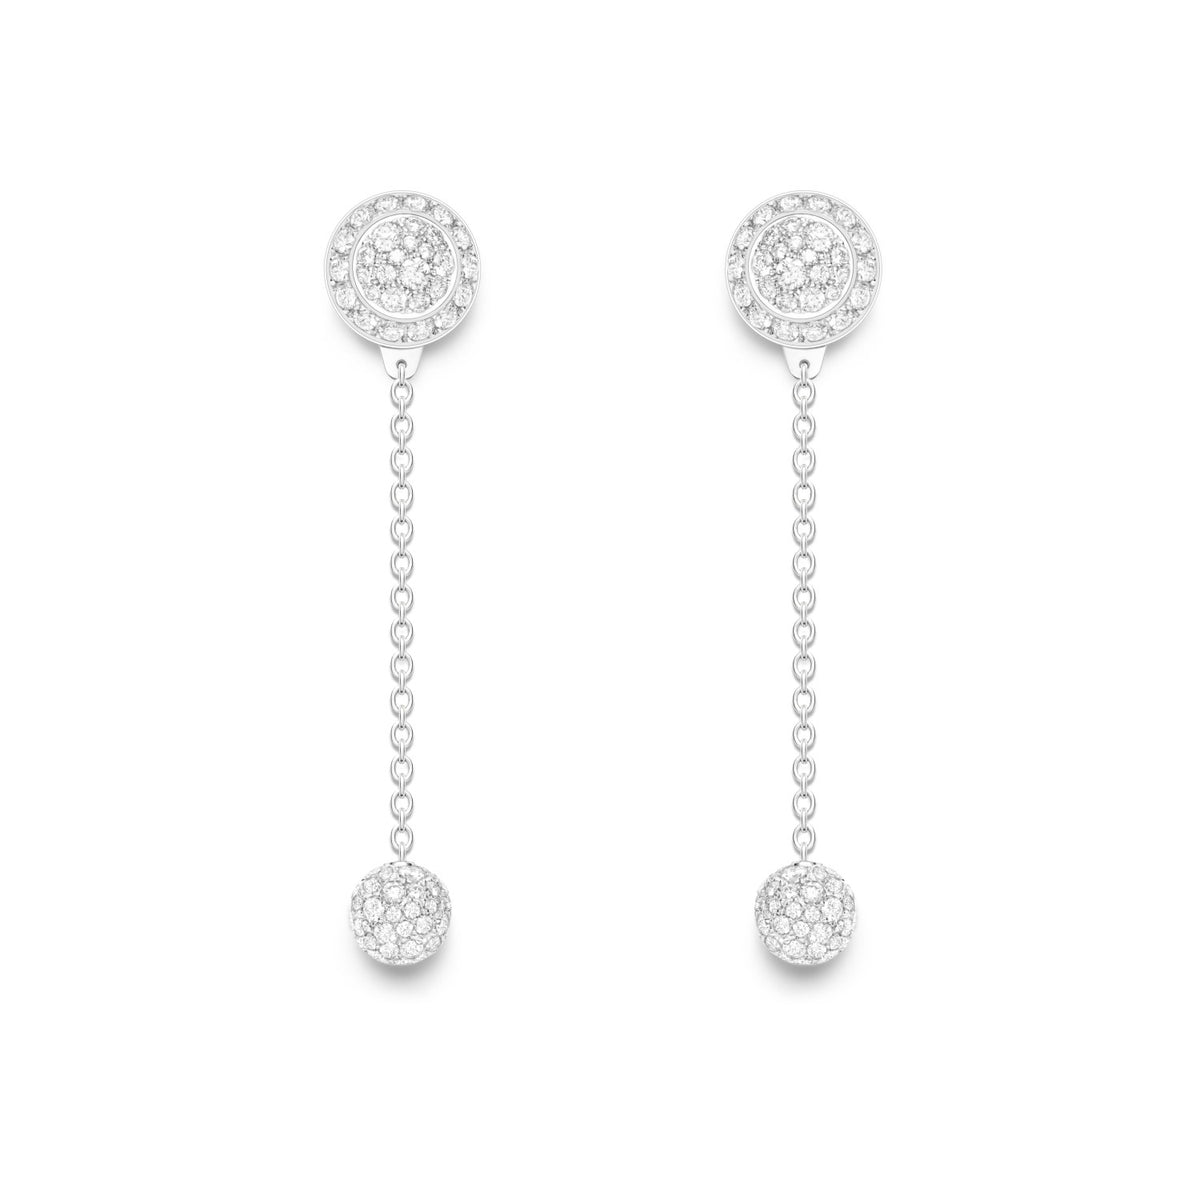 Possession earrings in 18K white gold set with 184 brilliant-cut diamonds (approx. 1.47 ct). 2 ways of wearing.